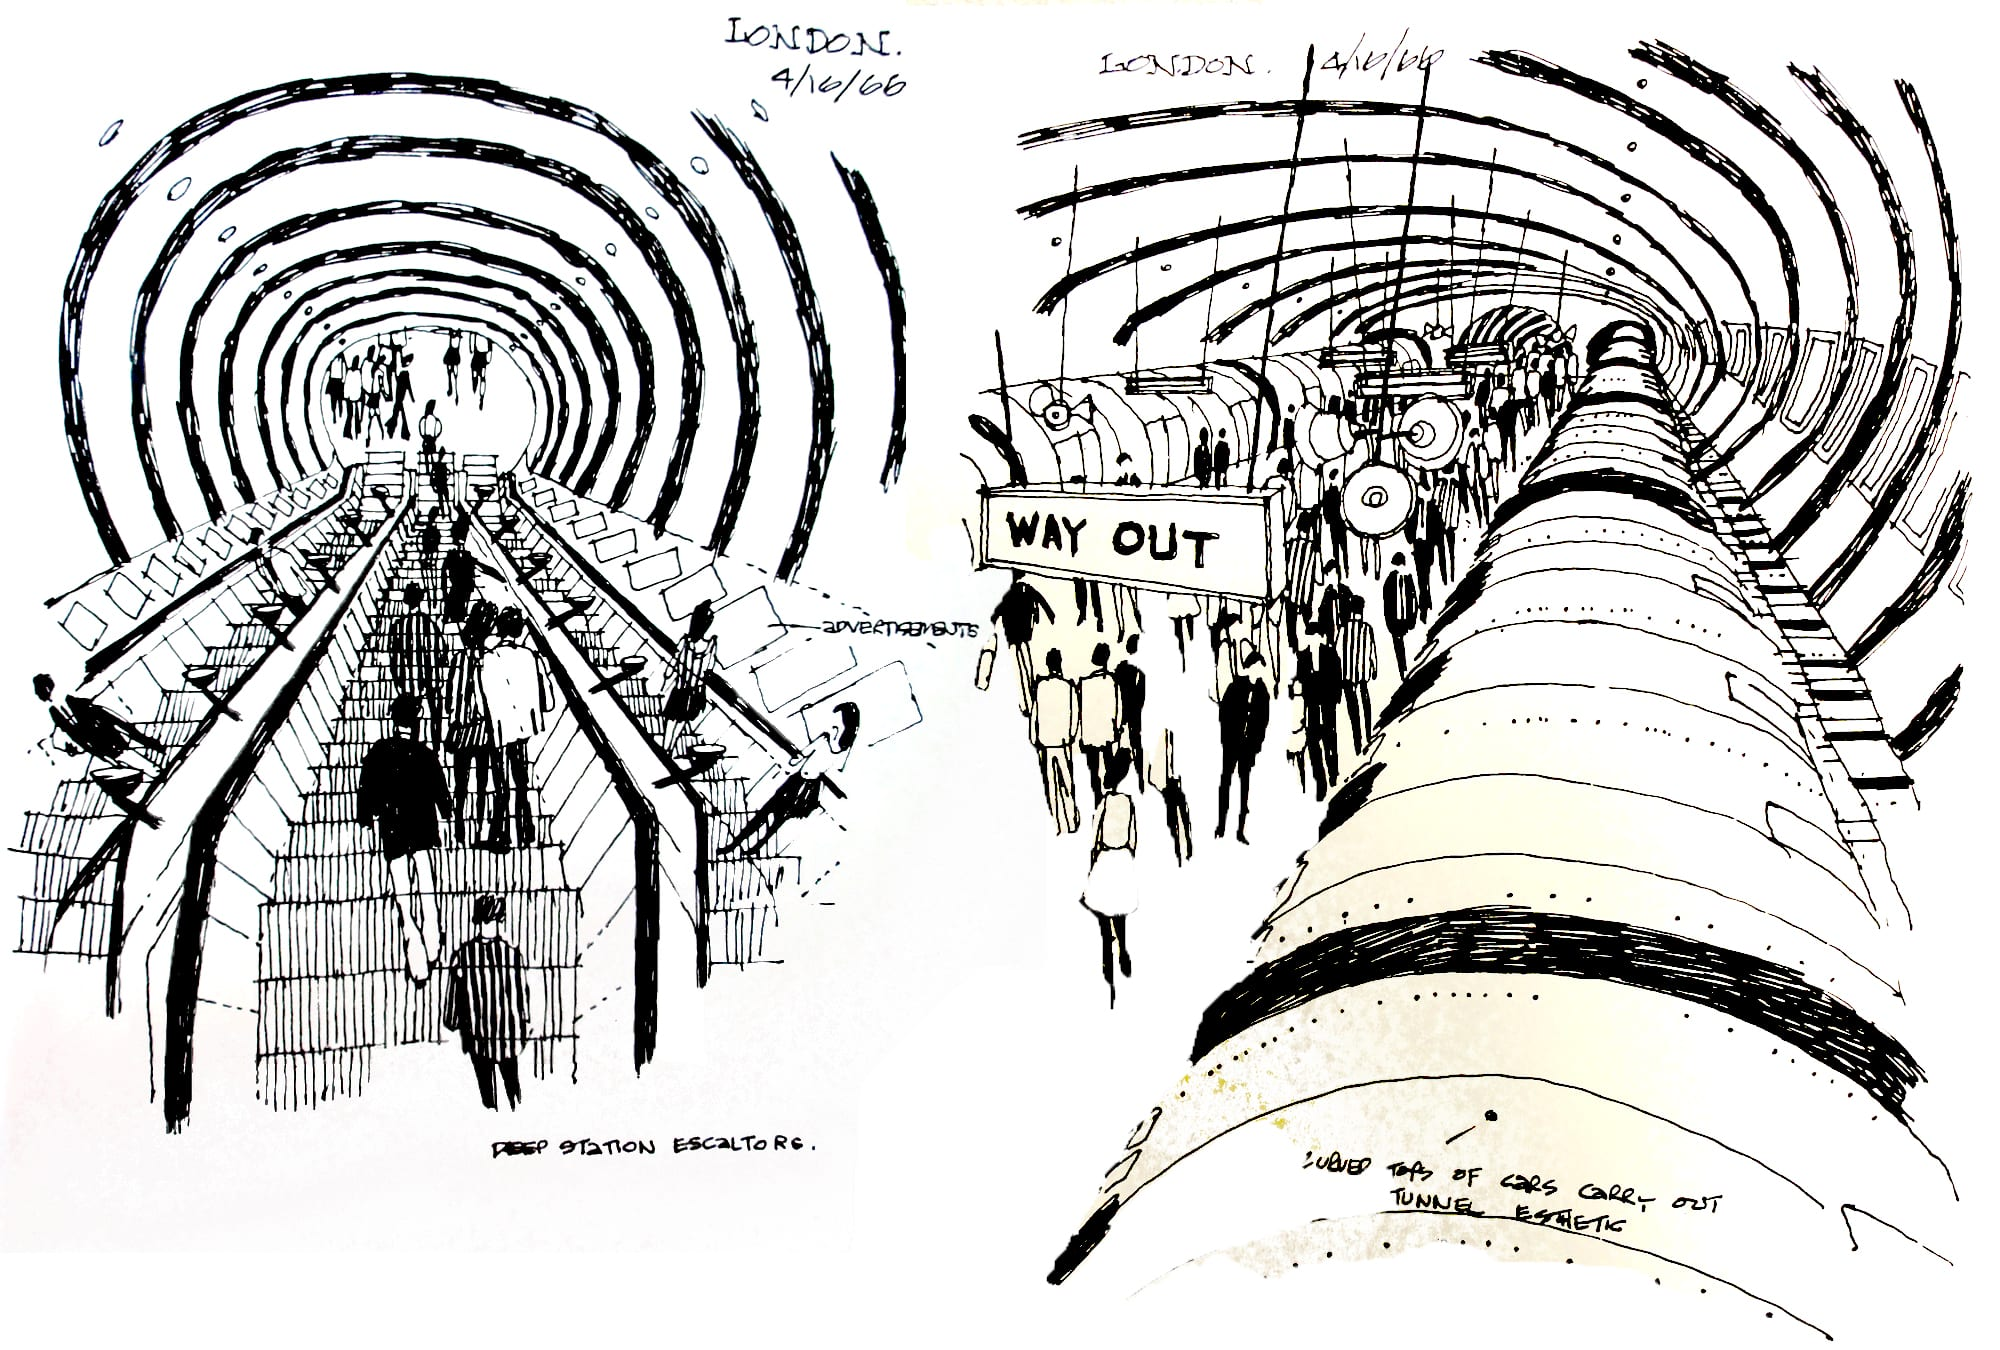 London subway sketches by HWA staff.